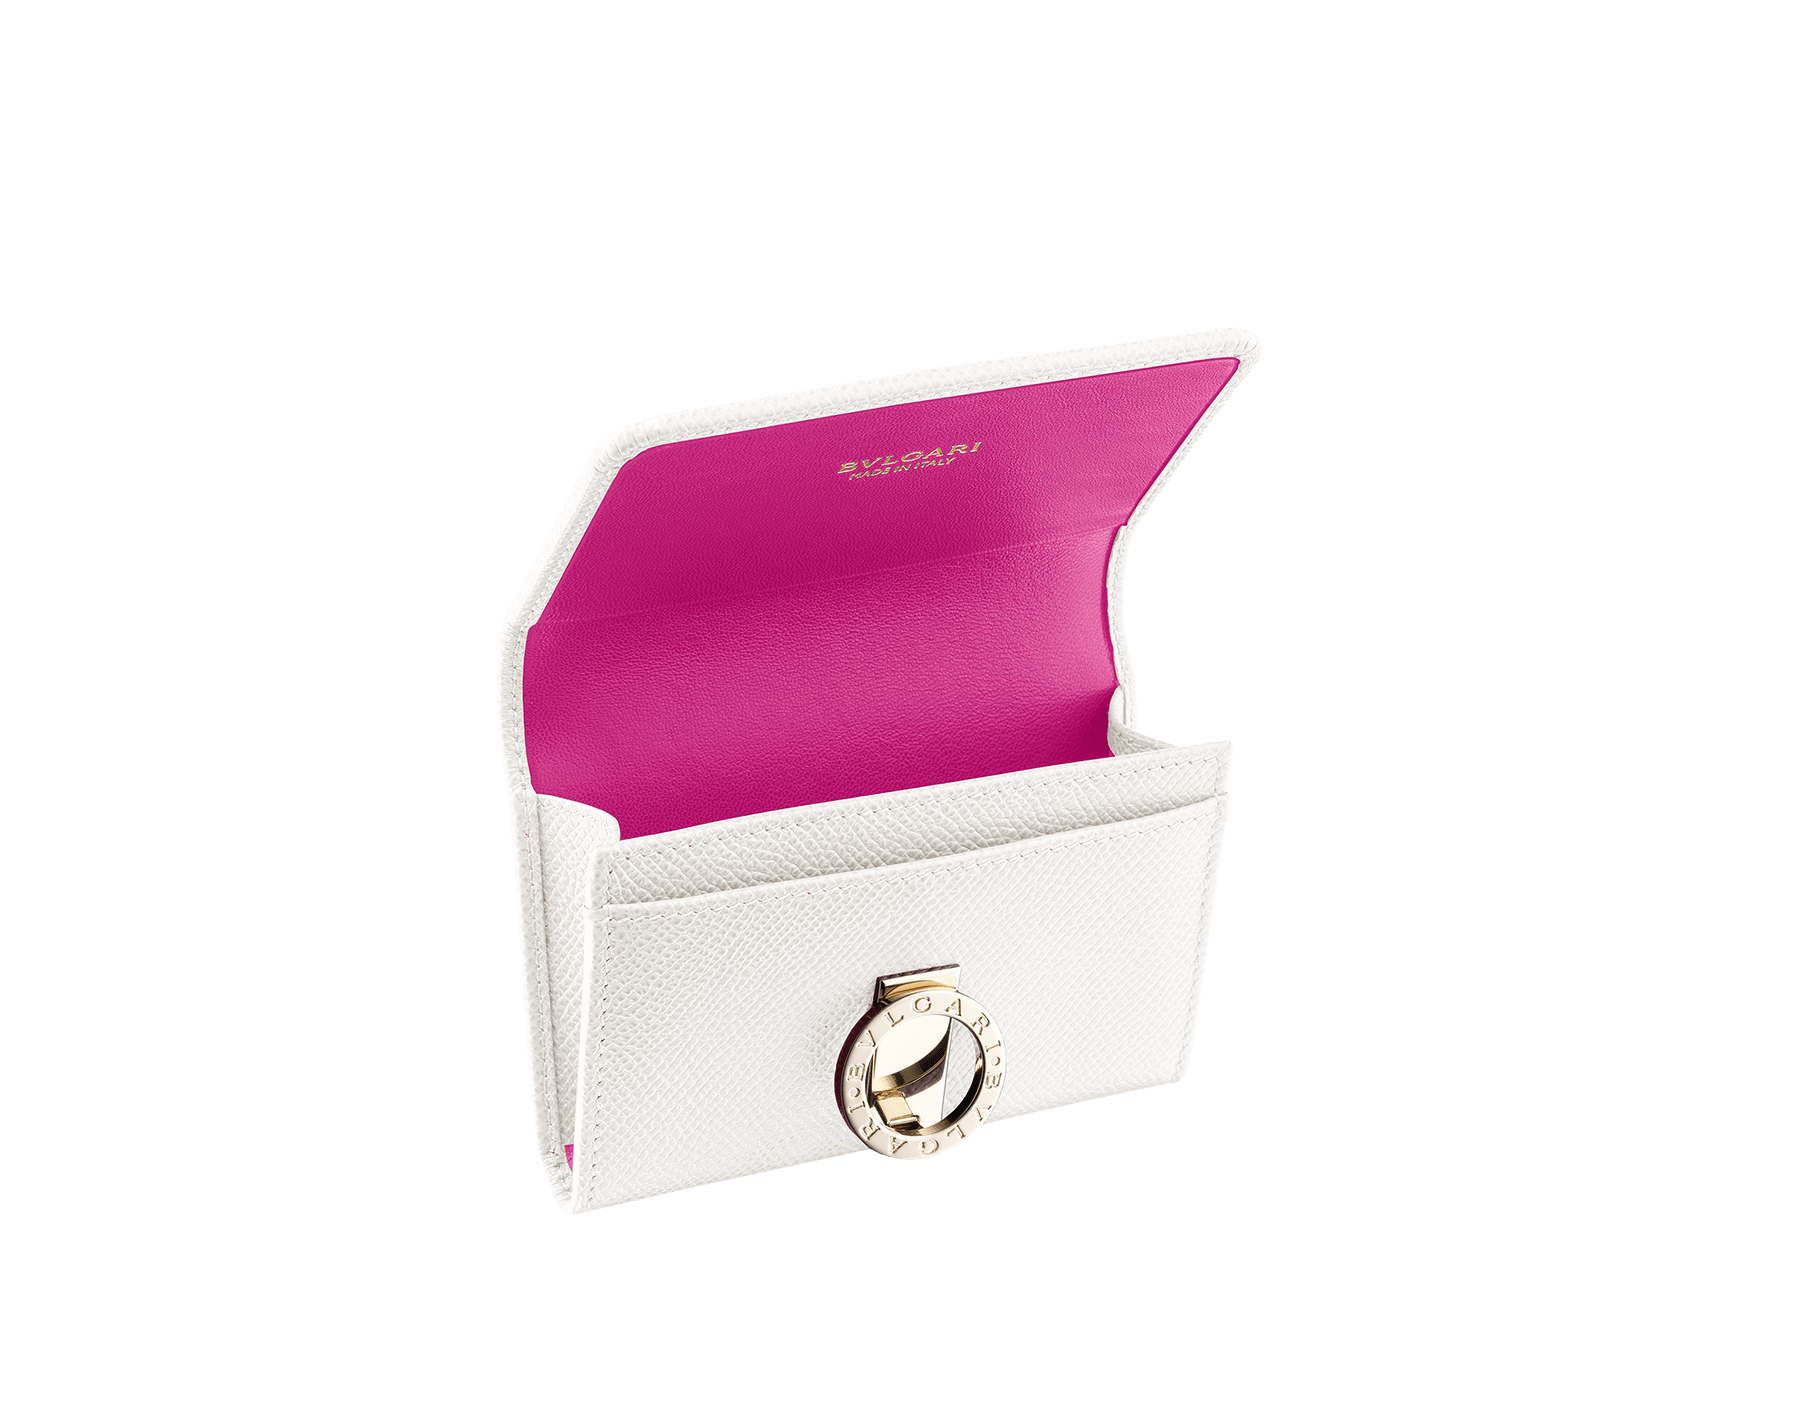 Business card holder in white agate bright grain calf leather, berry tourmaline nappa and tiger's eye nappa lining. Iconic brass light gold plated clip featuring the BVLGARI BVLGARI motif. 282417 image 2